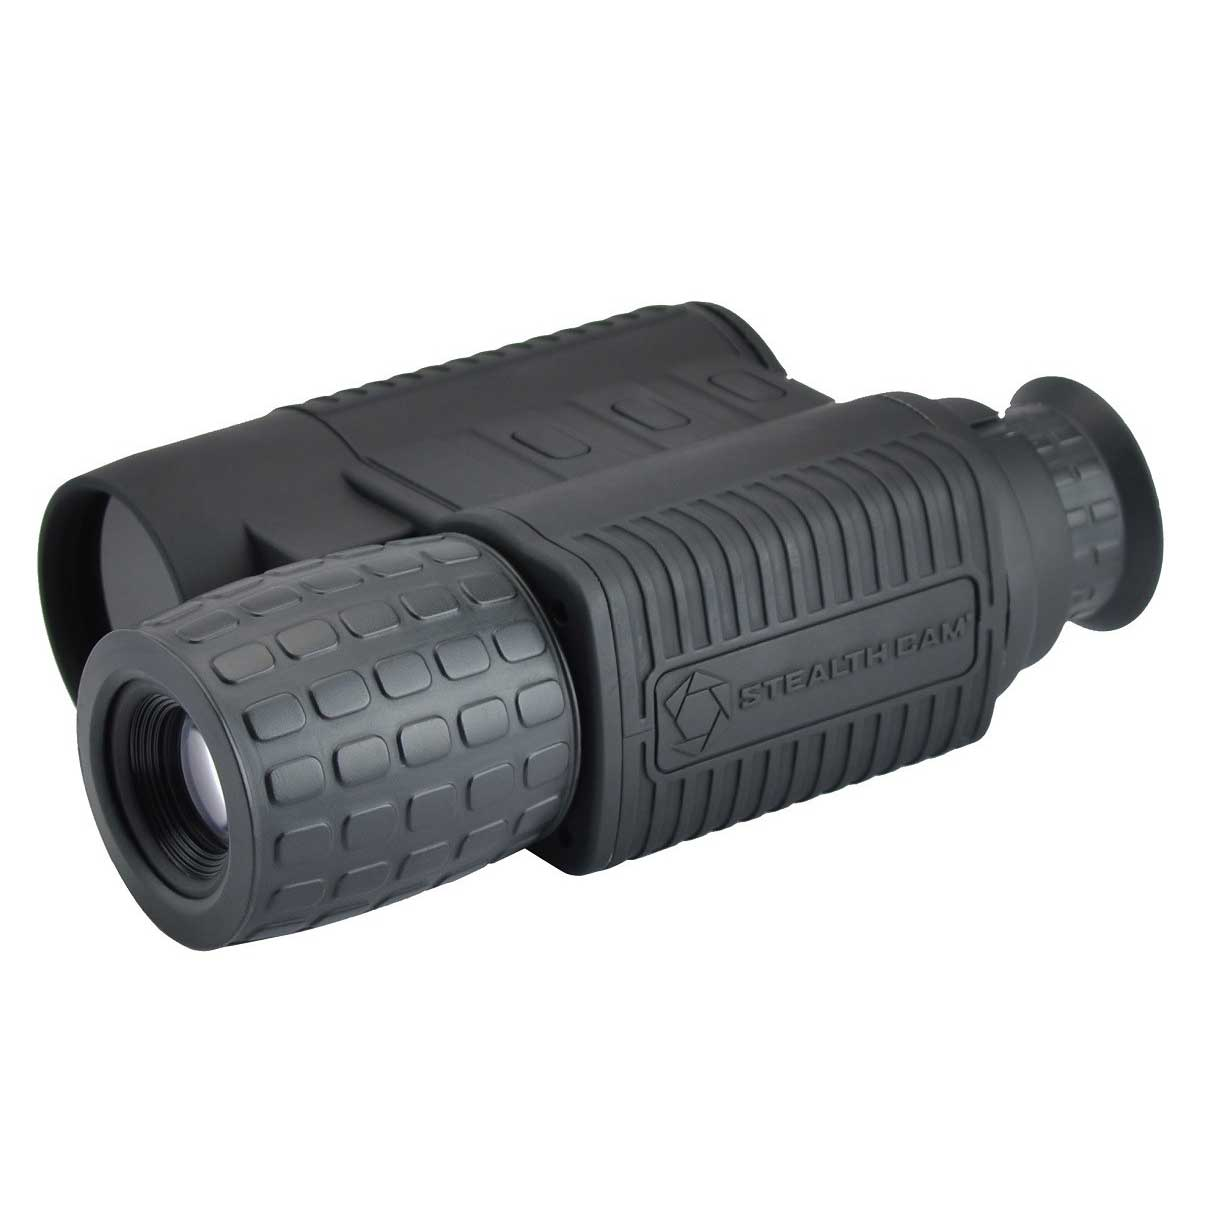 Stealth Cam 9x Zoom Night Vision 400 Ft Sight Monocular (Certified Refurbished) by Stealth Cam